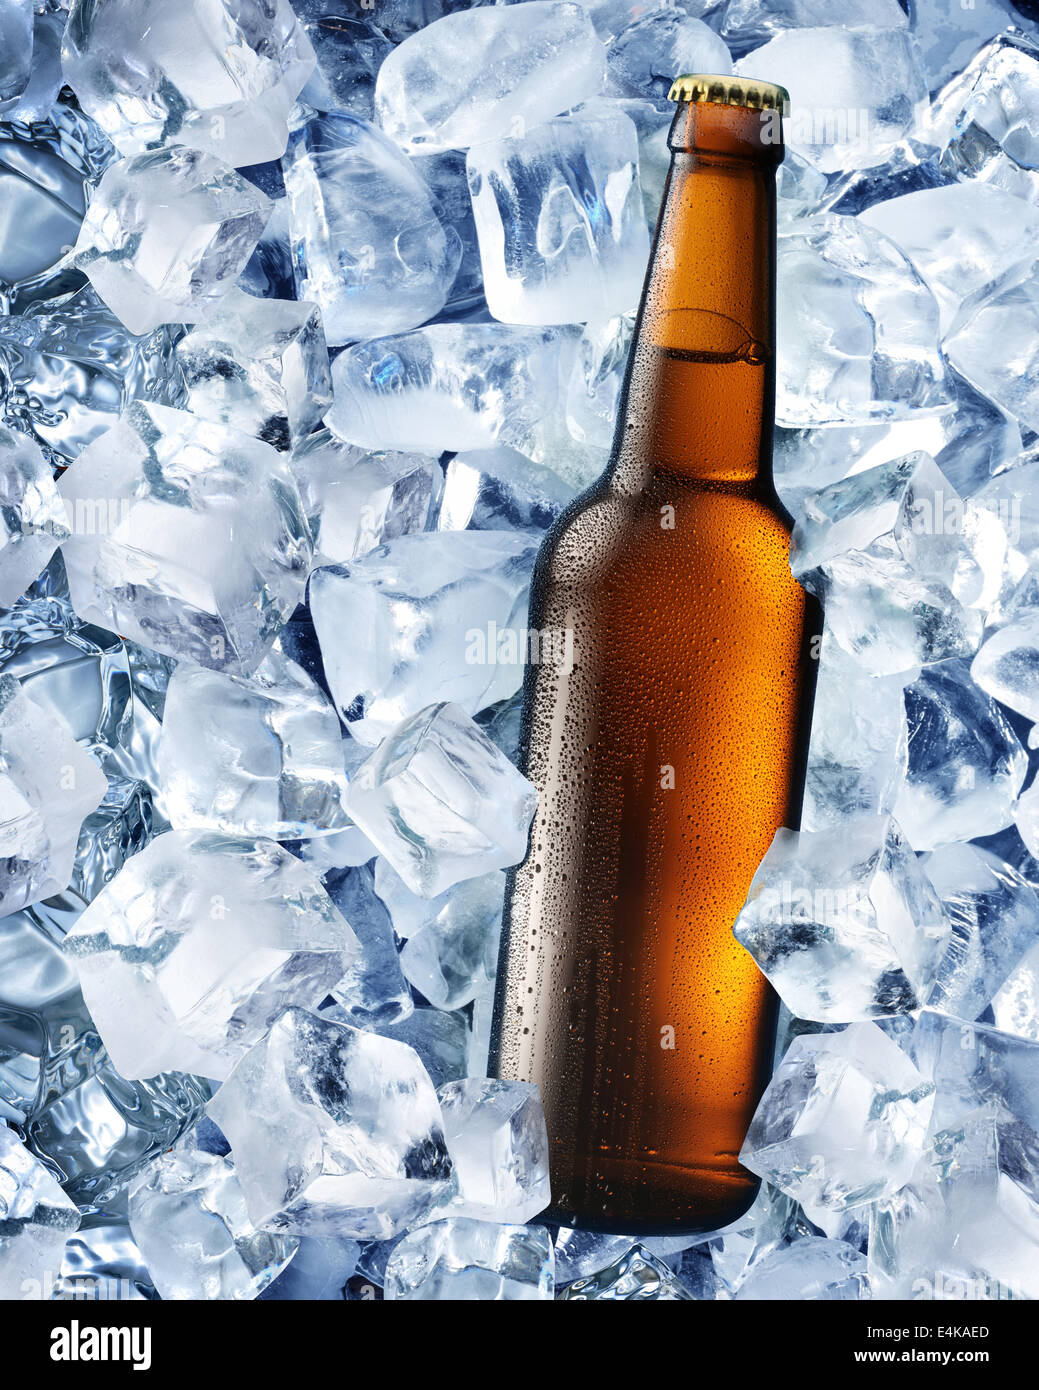 Bottle of beer in ice cubes. - Stock Image